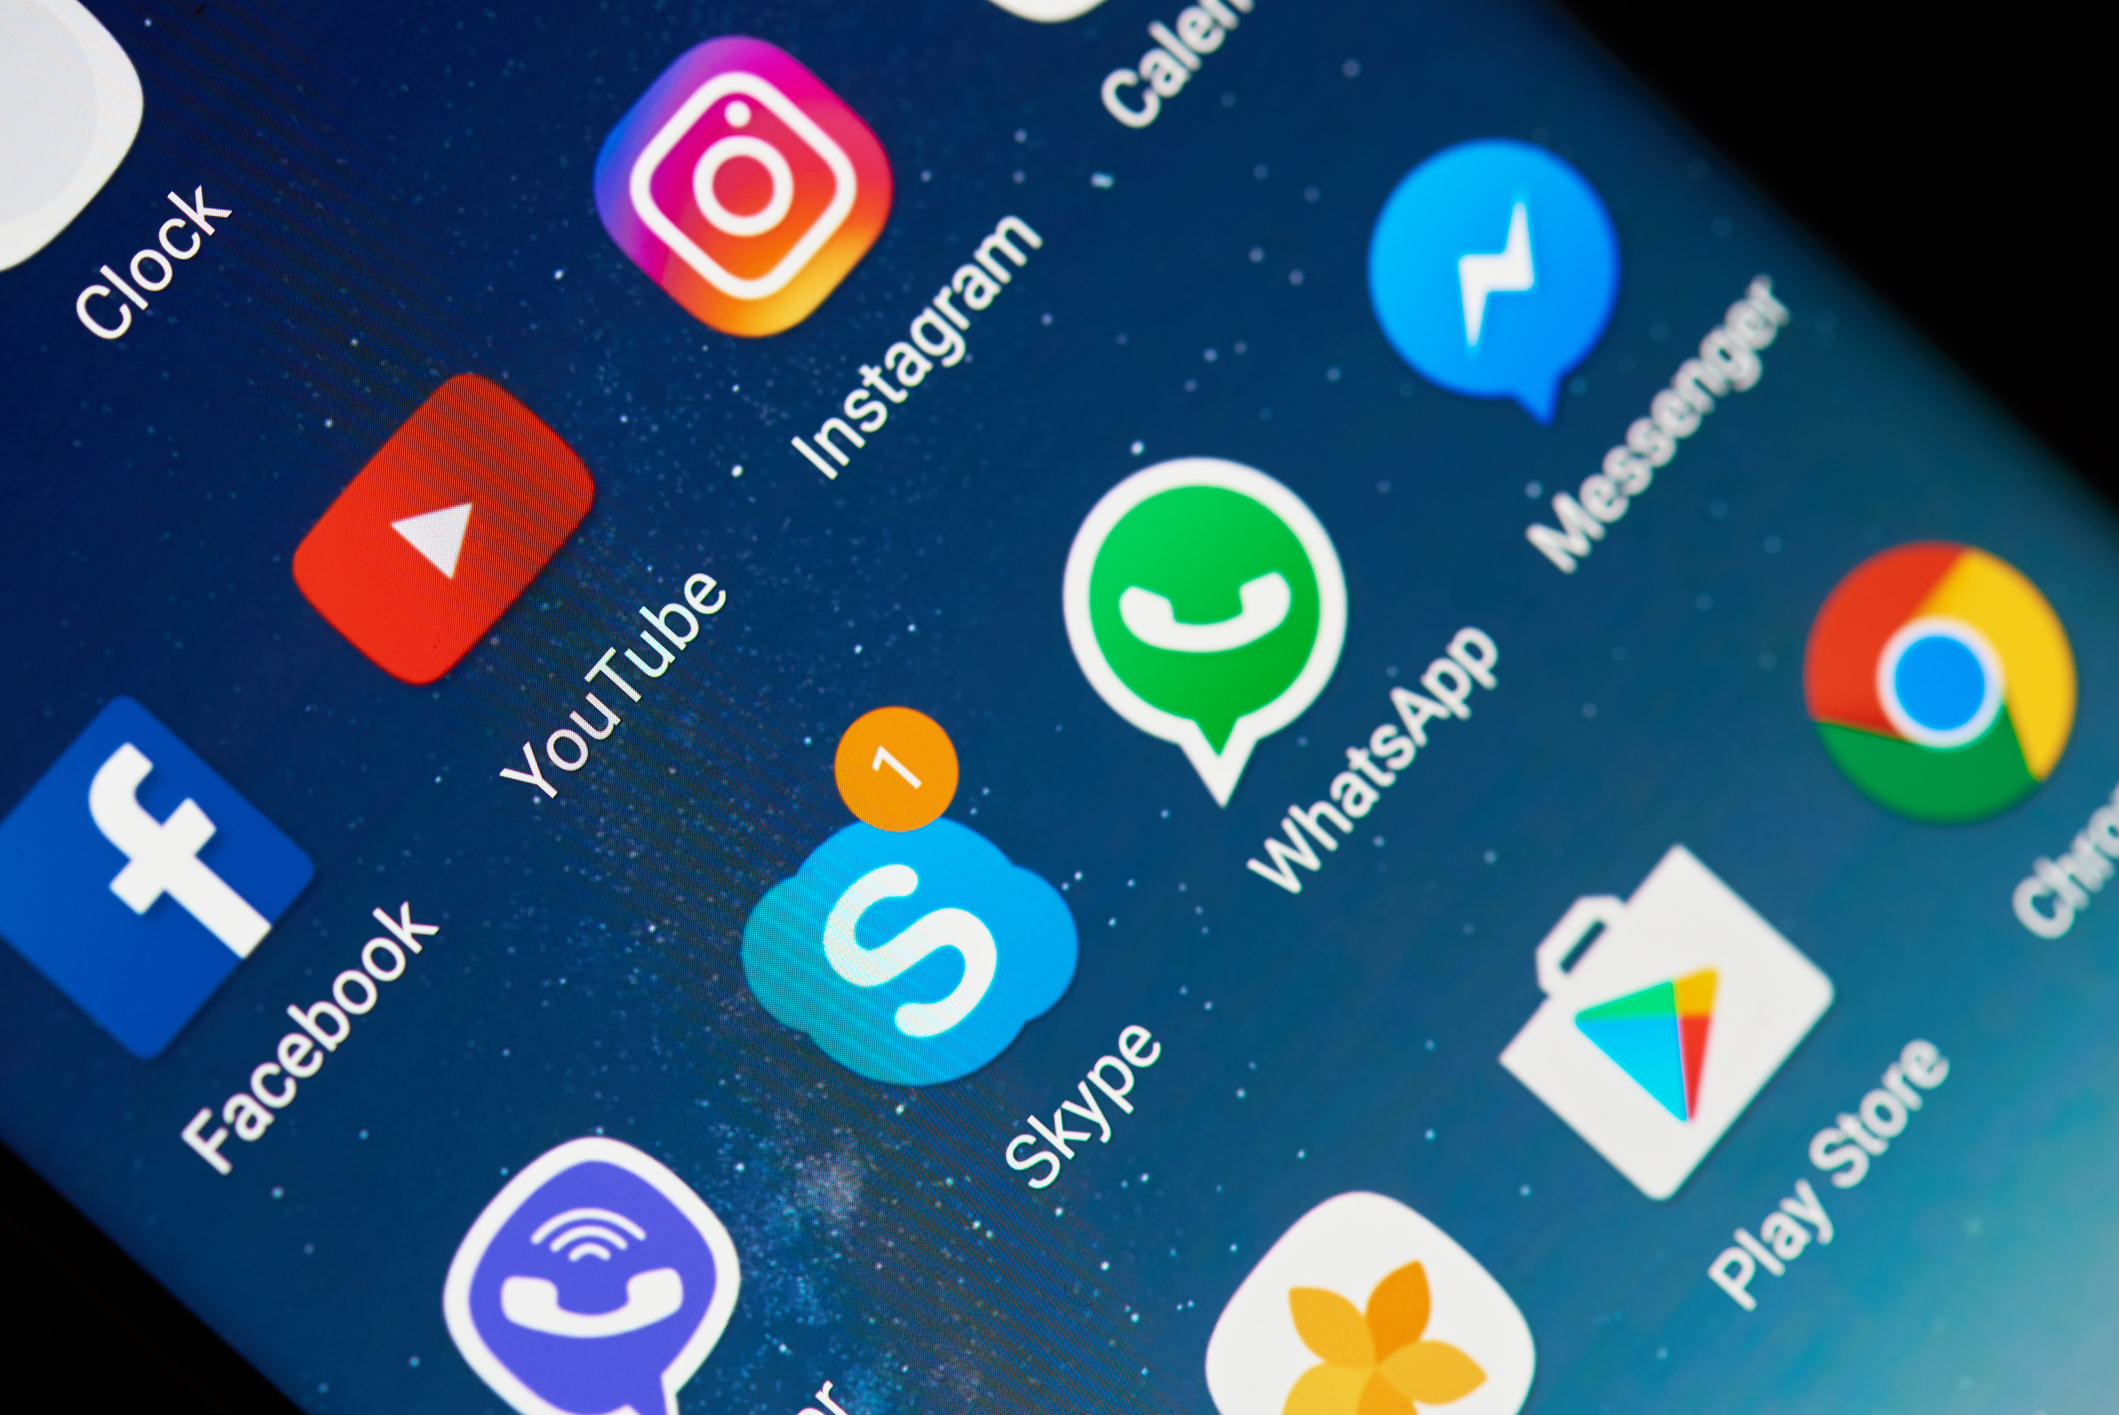 TOP APPS TO HAVE WHEN WORKING ON YOUR PHONE